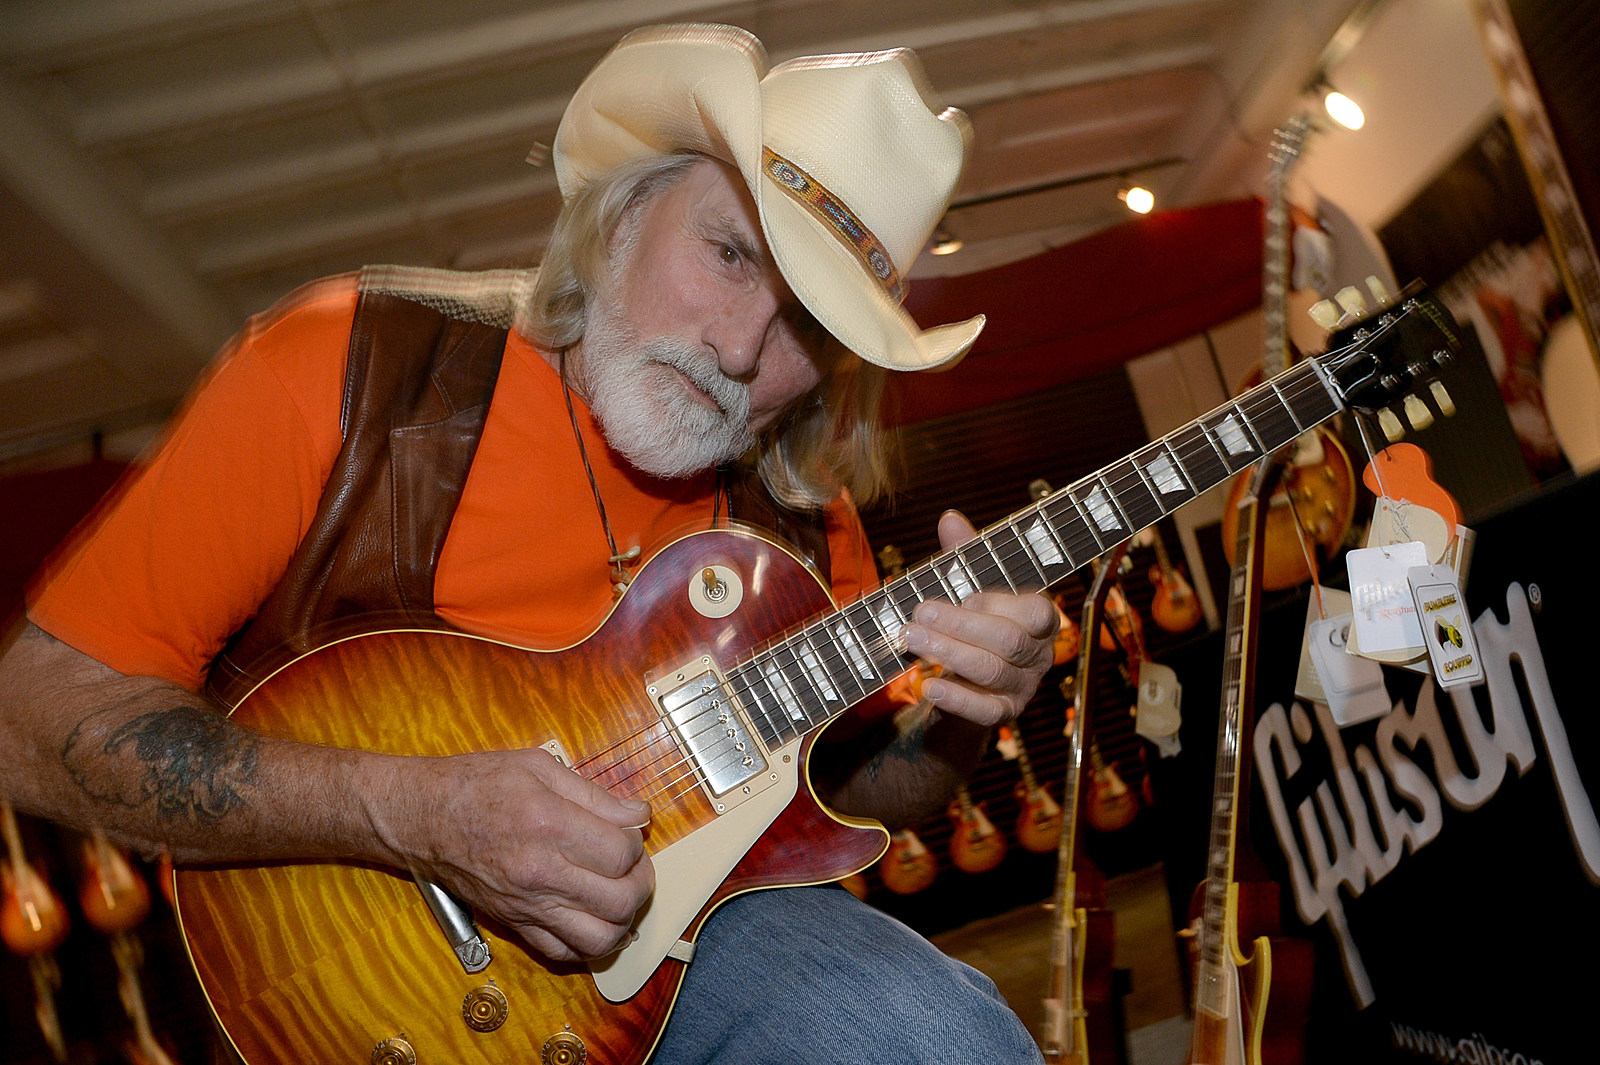 Allman Brothers Founding Member Dickey Betts in Critical Condition Following Accident